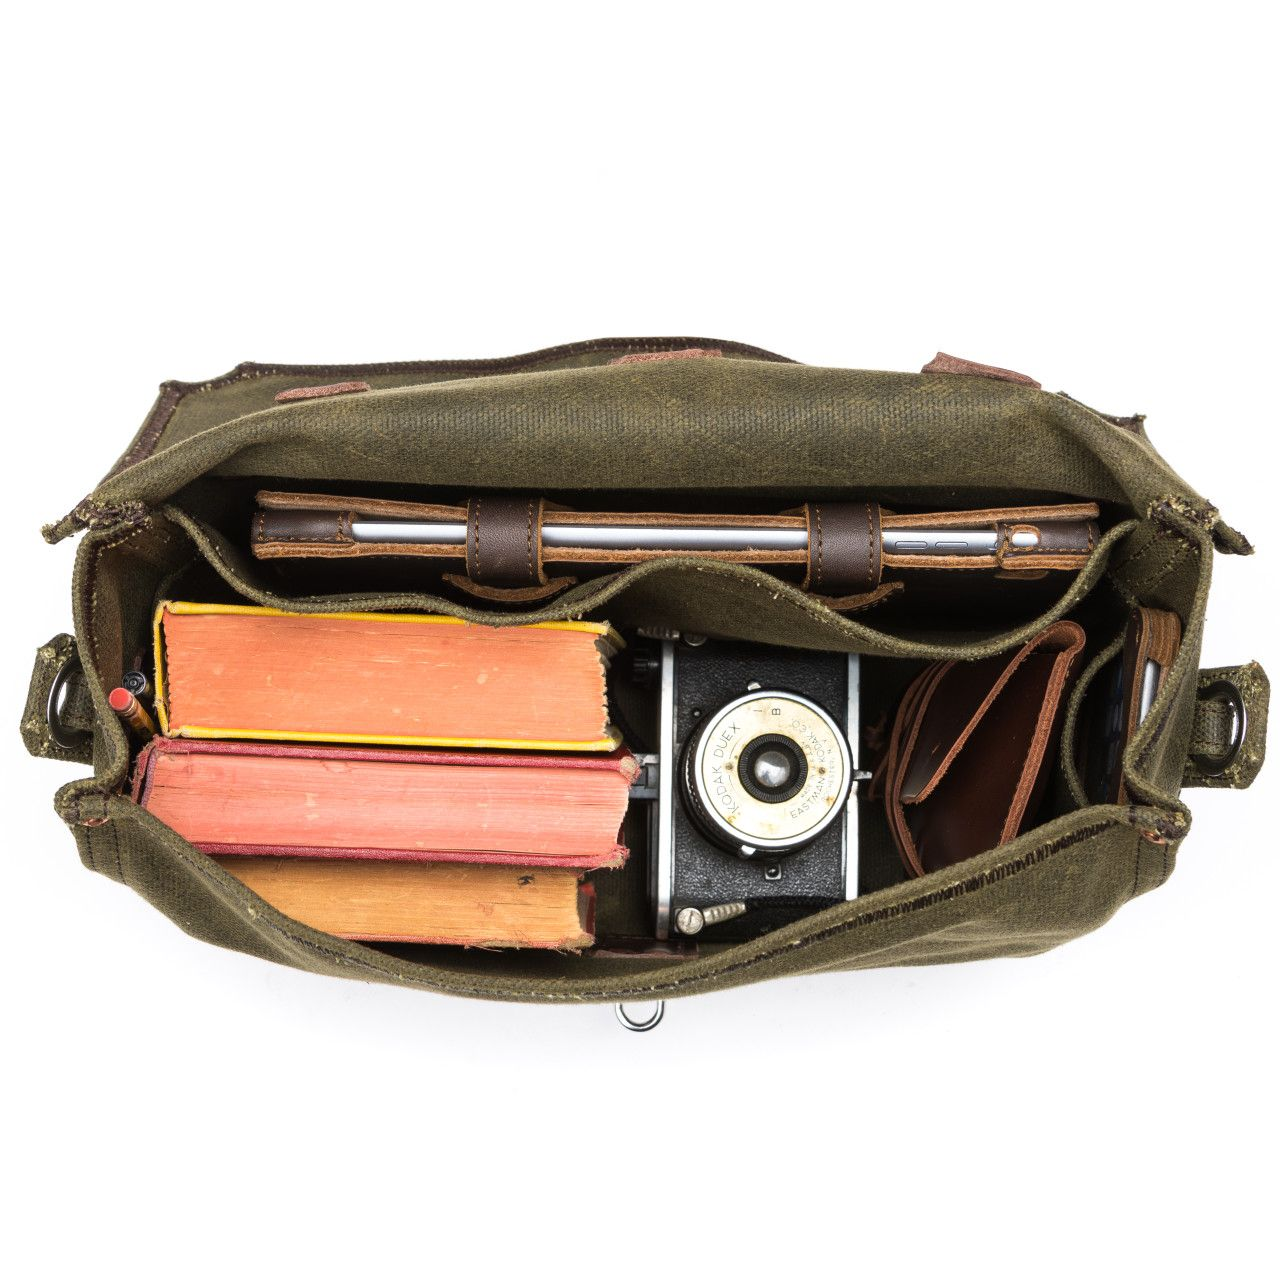 medium waxed canvas gear bag in moss green canvas with books, camera and tablet inside